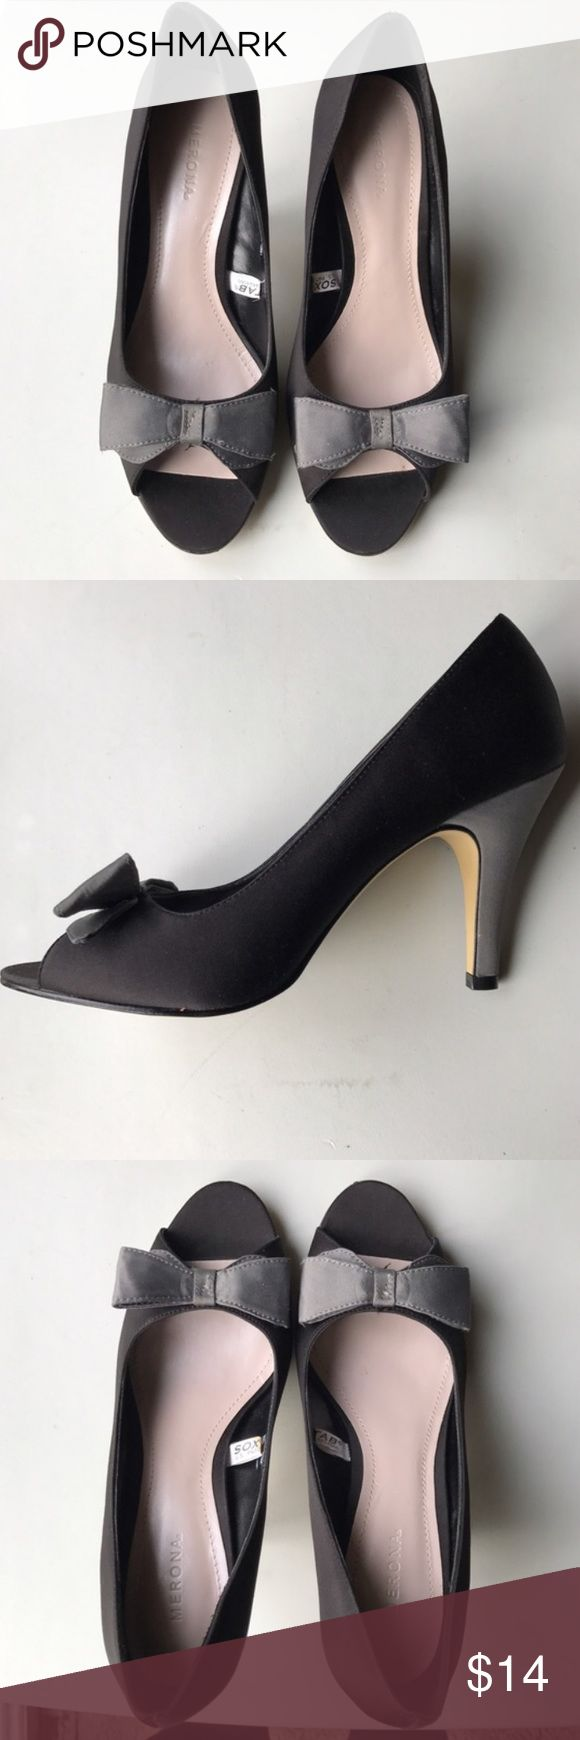 • Merona • black and silver colored heels Gorgeous peep toe heels with bow tie on upper. Satin style texture along the upper. Nice sturdy heel on these black and gray two toned heels. Leather sole. Elegant heels for many occasions. Merona Shoes Heels